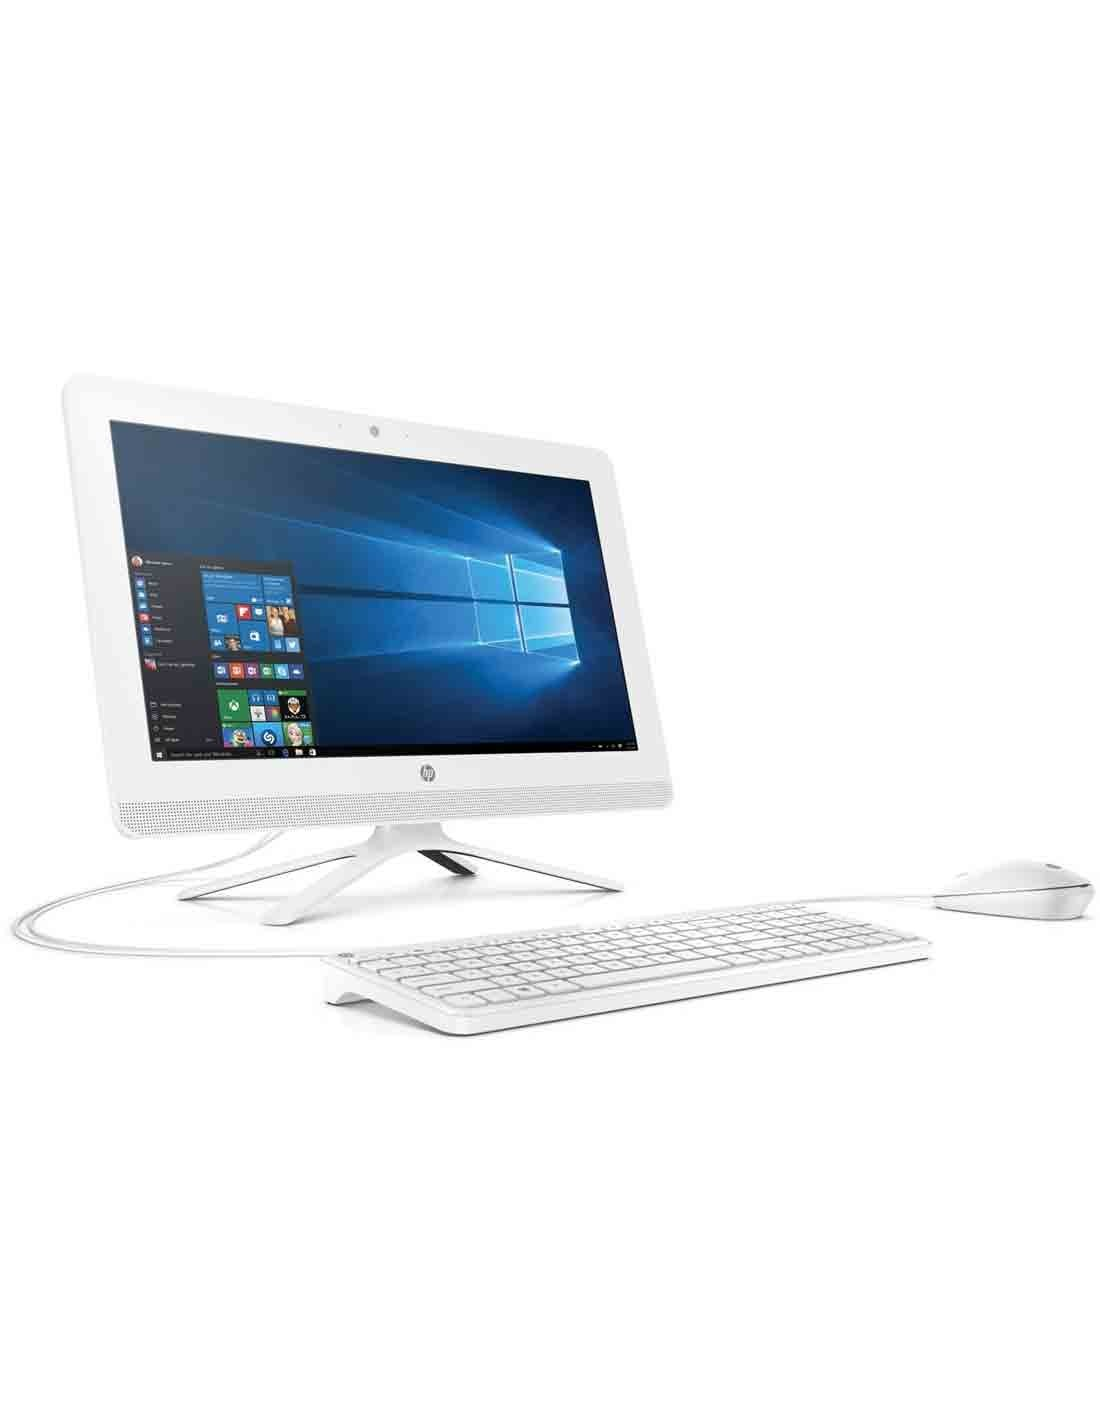 HP All in One 22-b041ne Buy Online at a Cheap Price in Dubai